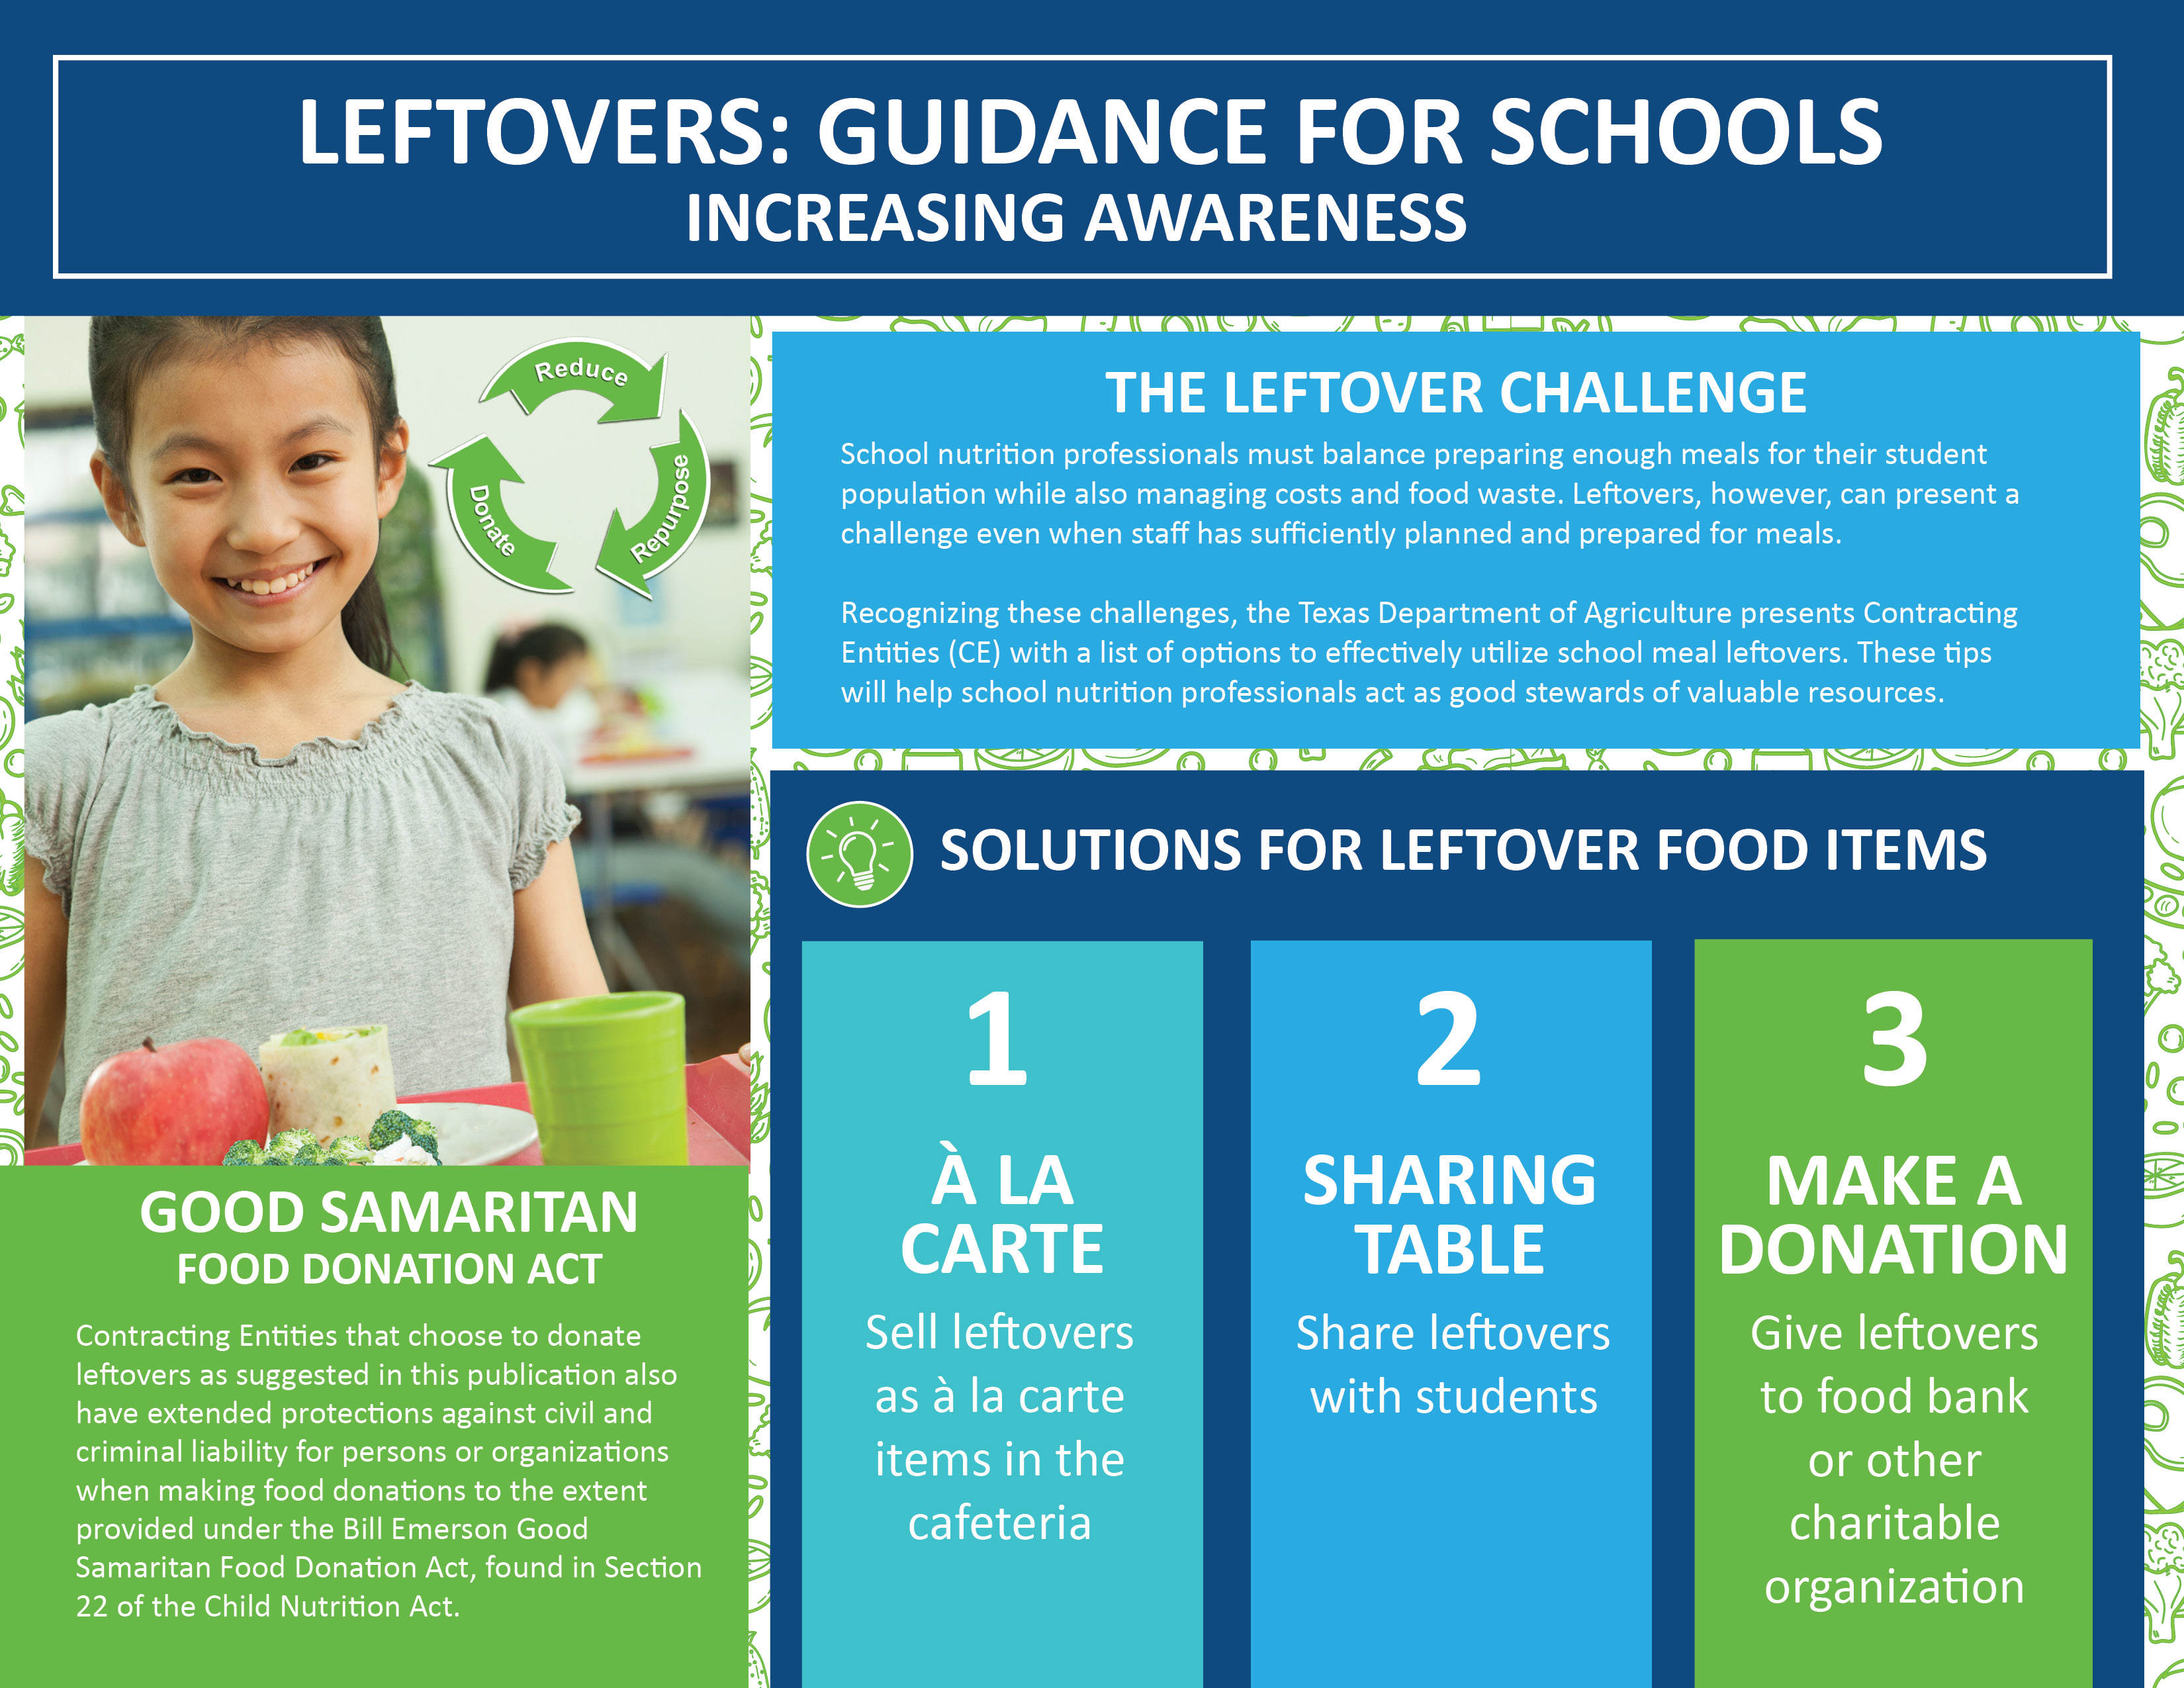 Leftovers: Guidance for Schools